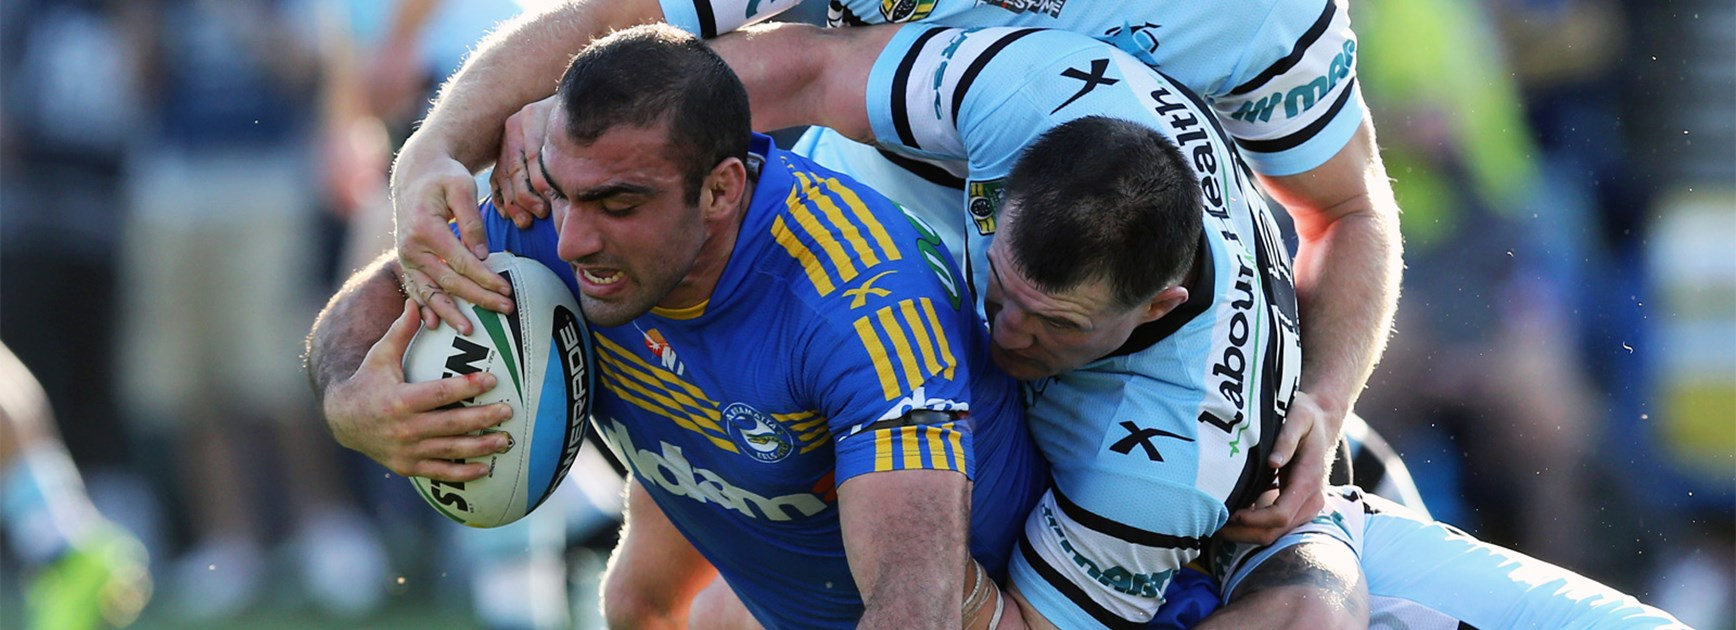 Tim Mannah is brought down by the Cronulla defence.